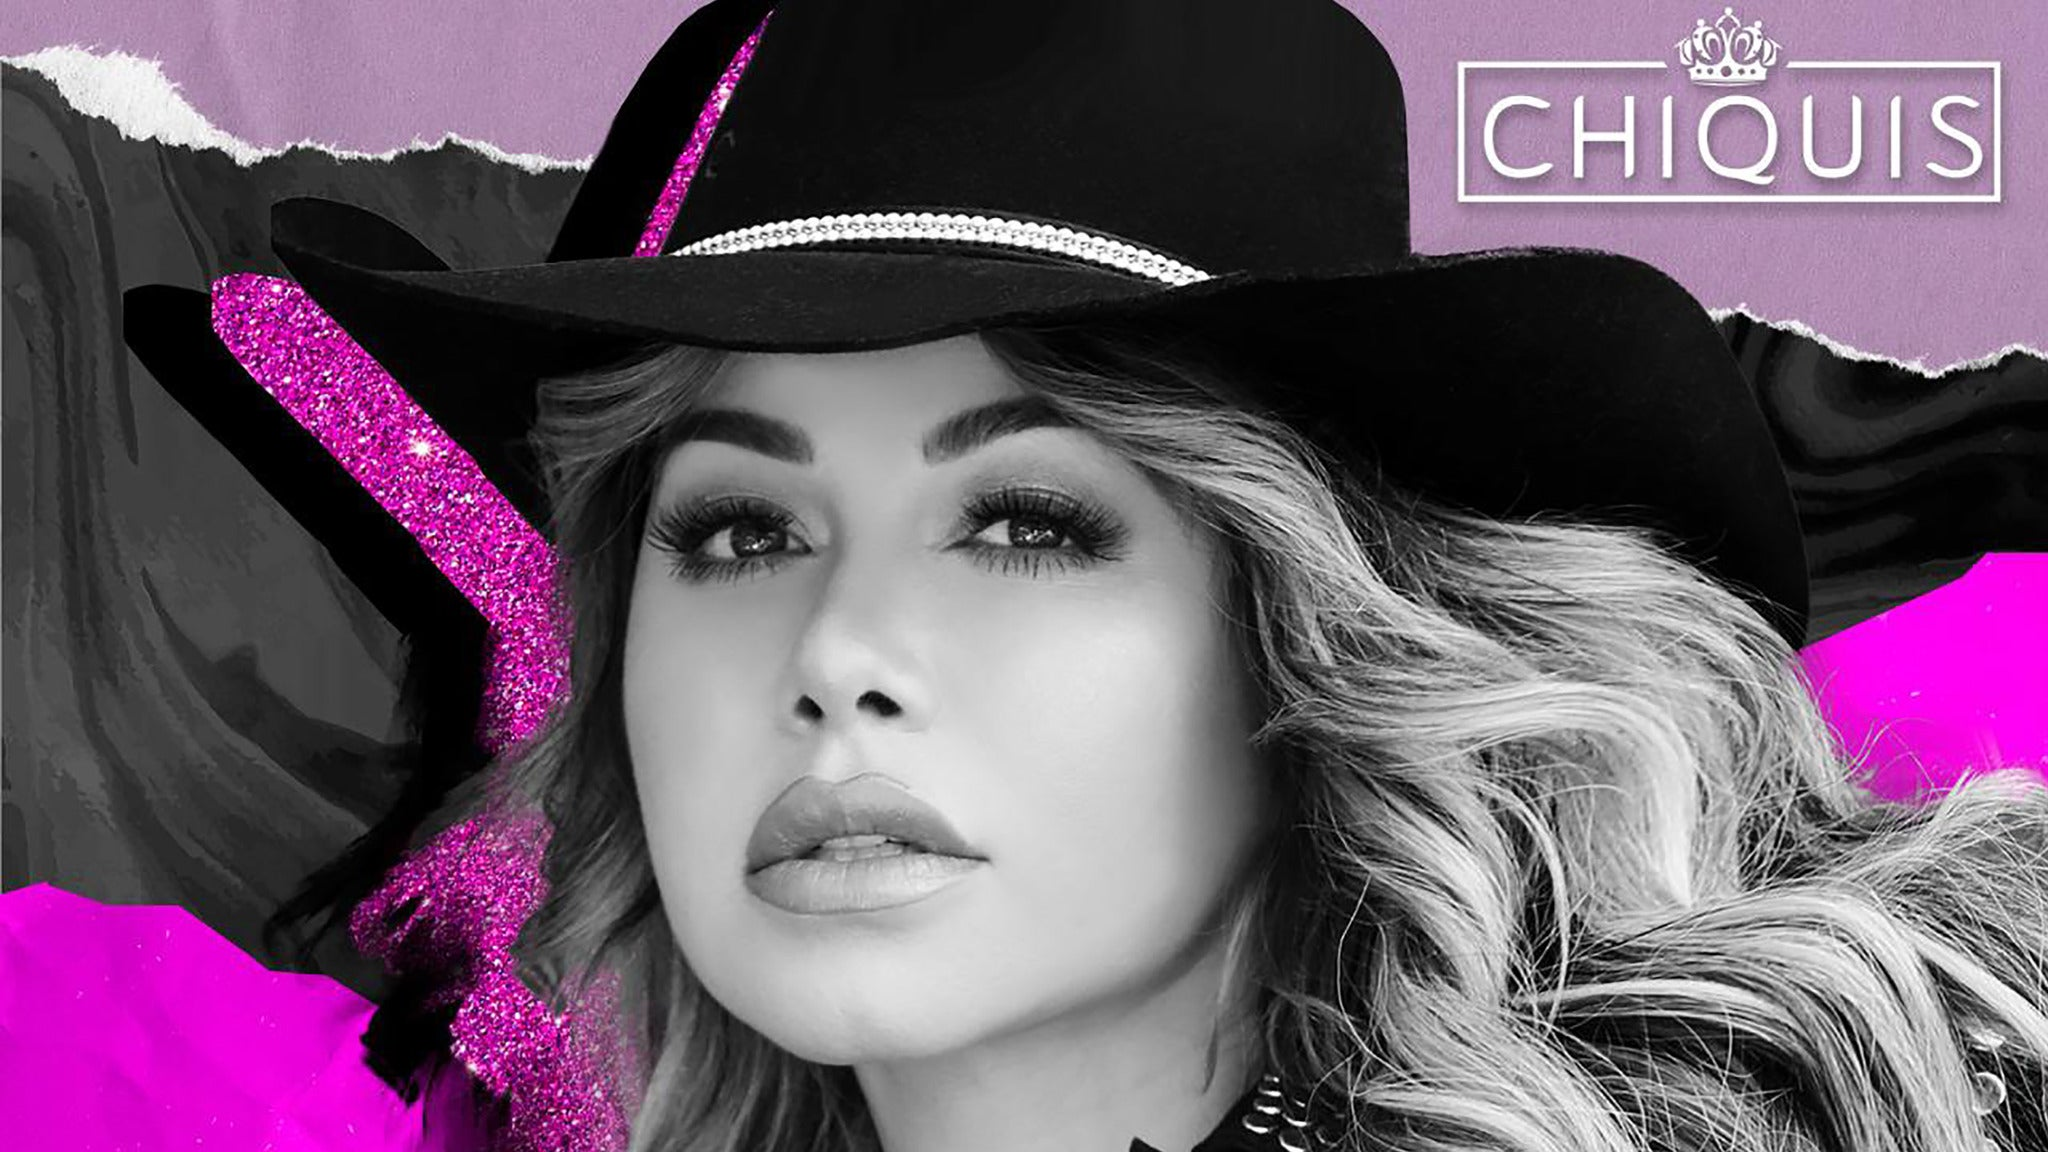 Chiquis Playlist Tour 2021 at City National Grove of Anaheim